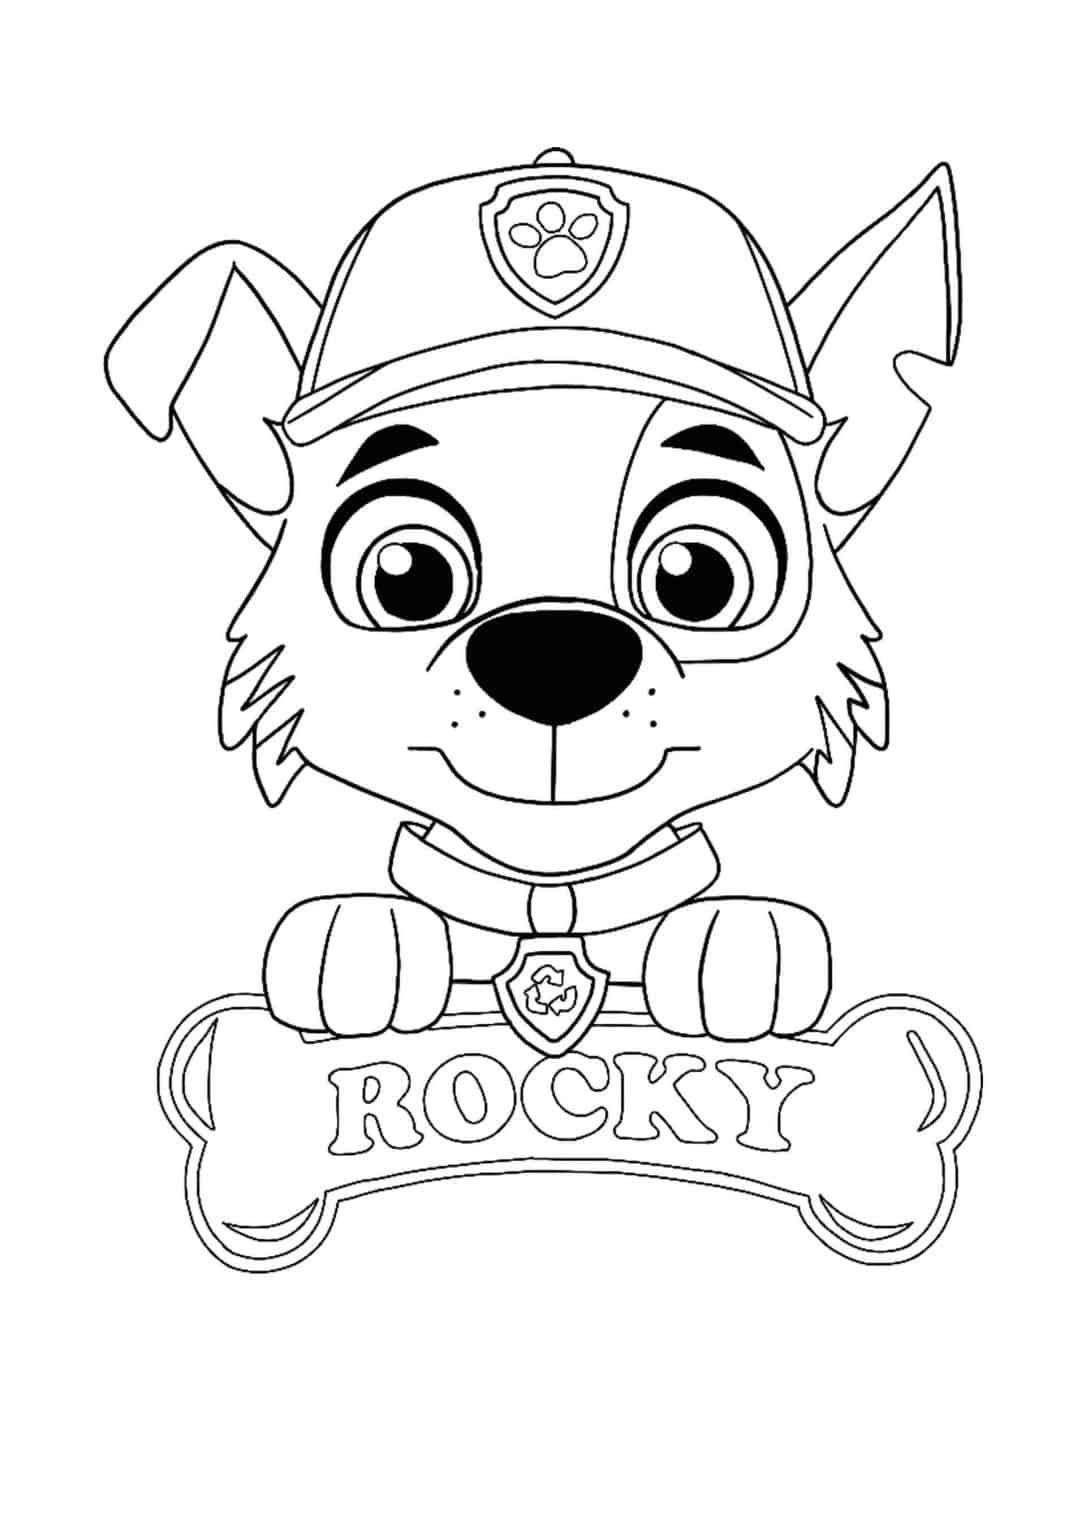 Paw Patrol Rocky Coloring Pages 4 Free Printable Coloring Sheets 2020 Paw Patrol Coloring Paw Patrol Rocky Unicorn Coloring Pages